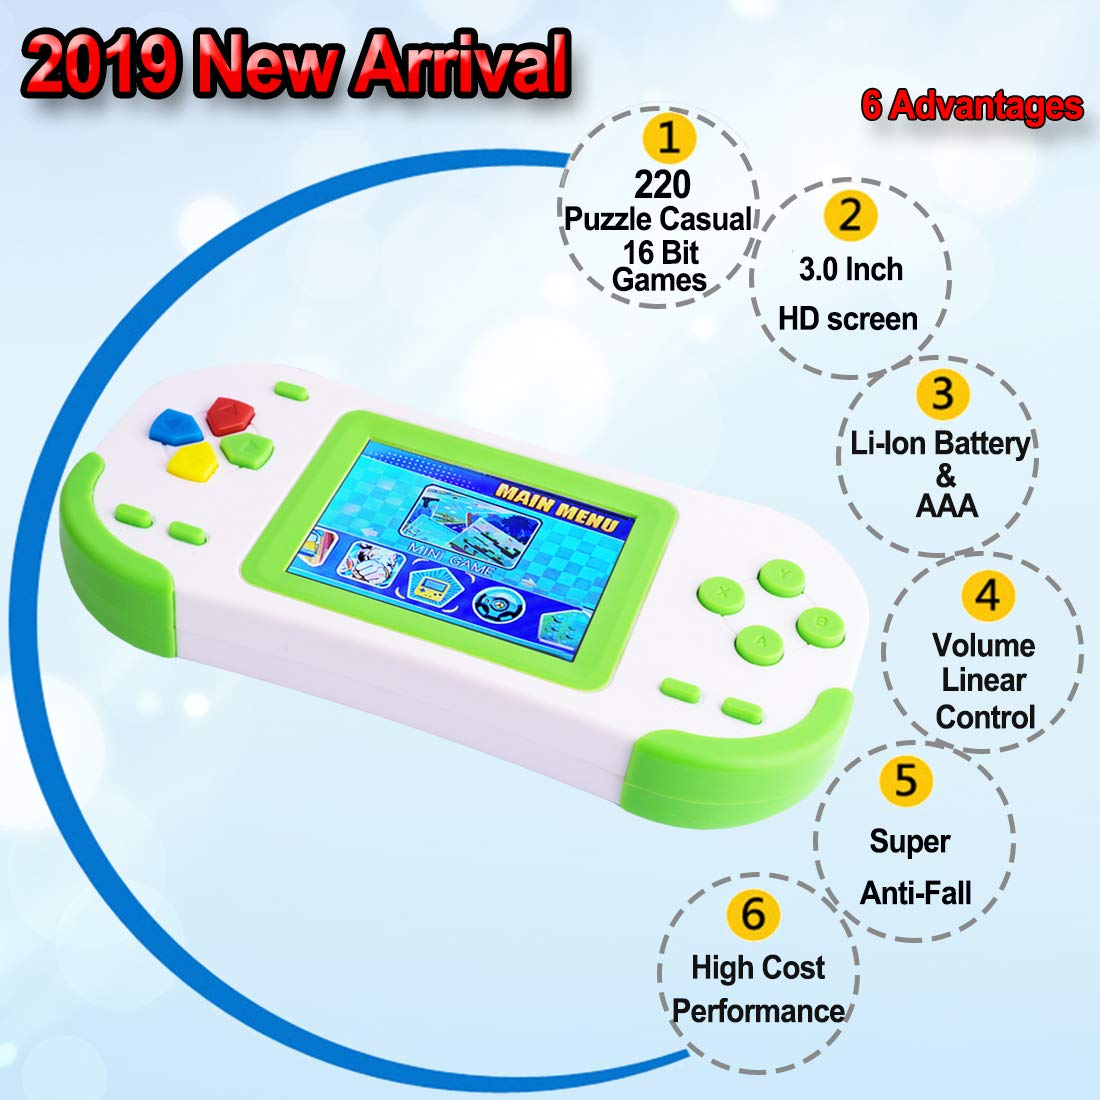 TEBIYOU Handheld Game Console for Kids Portable Video Game Player with Built in 16 Bit 220 HD Classic Games 3.0'' Large Screen Electronic Handheld Games for Seniors Adults Children Birthday (Green) by TEBIYOU (Image #2)